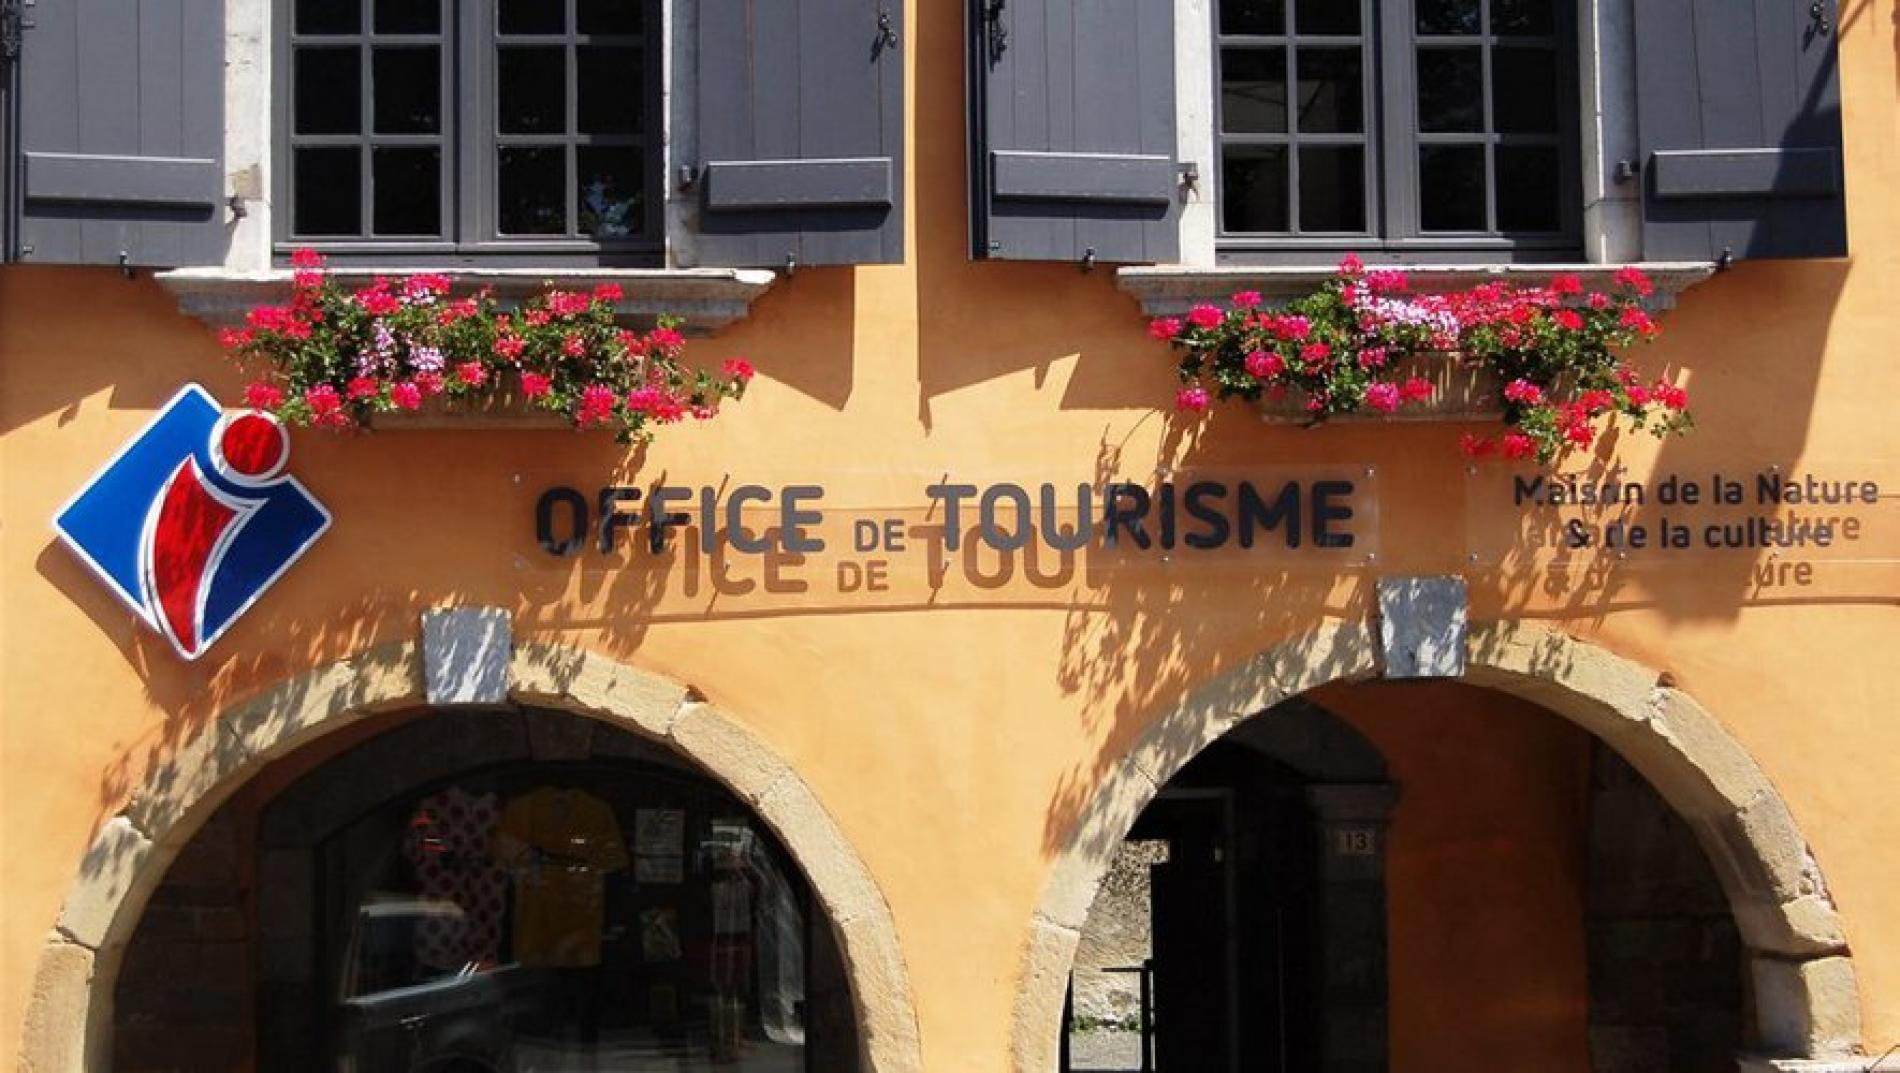 Tourist office of Saint-Pé-de-Bigorre